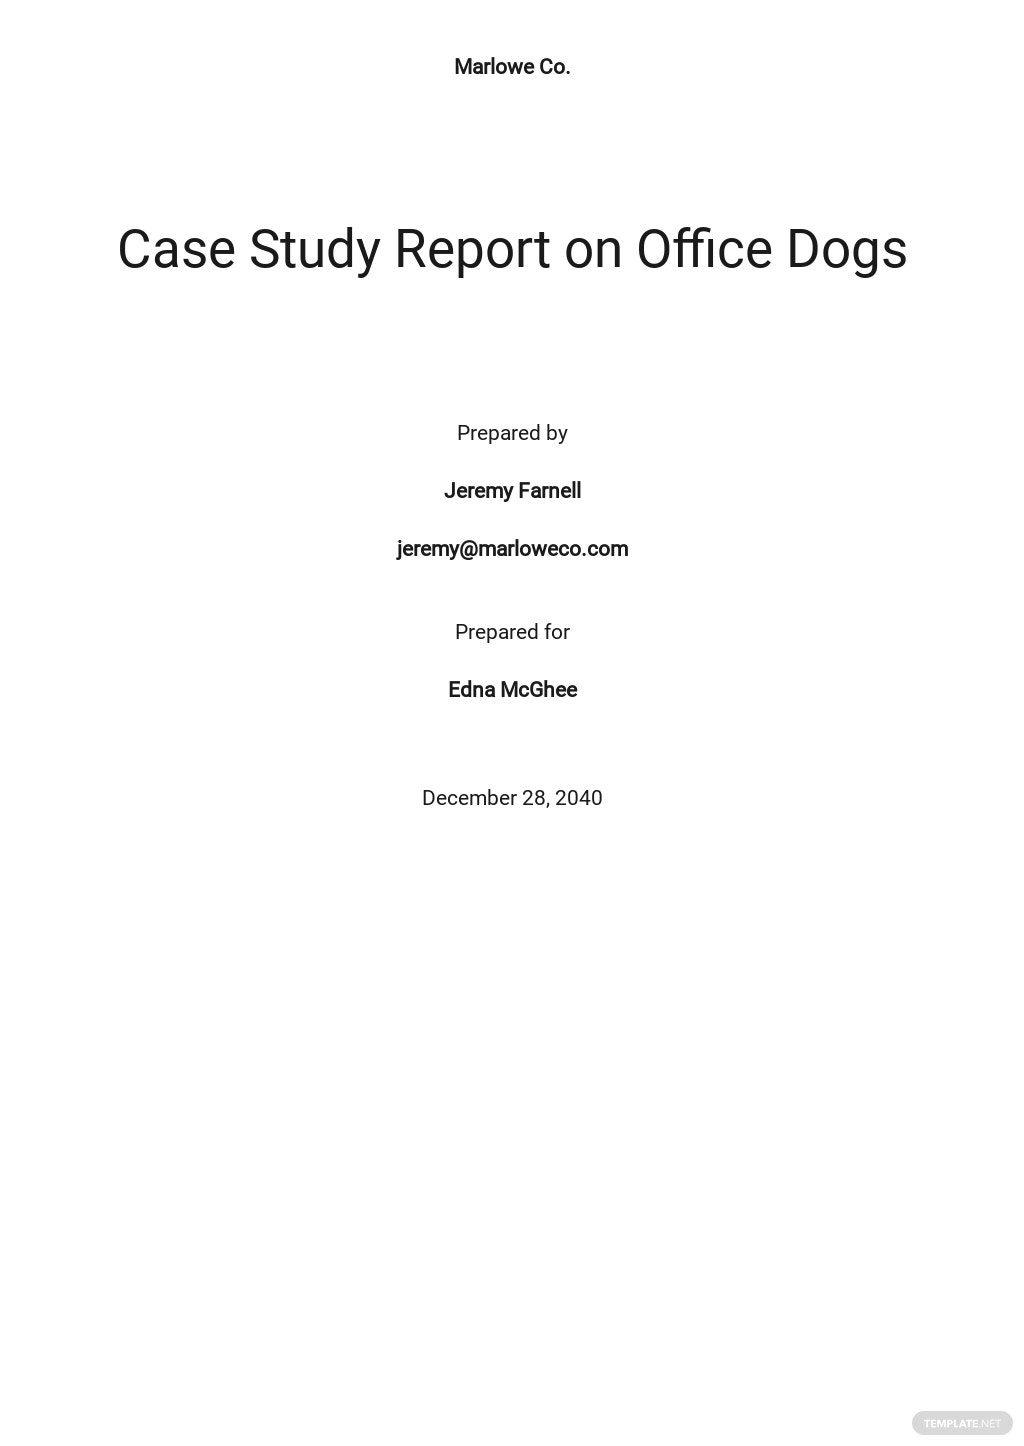 Case Study Report Template